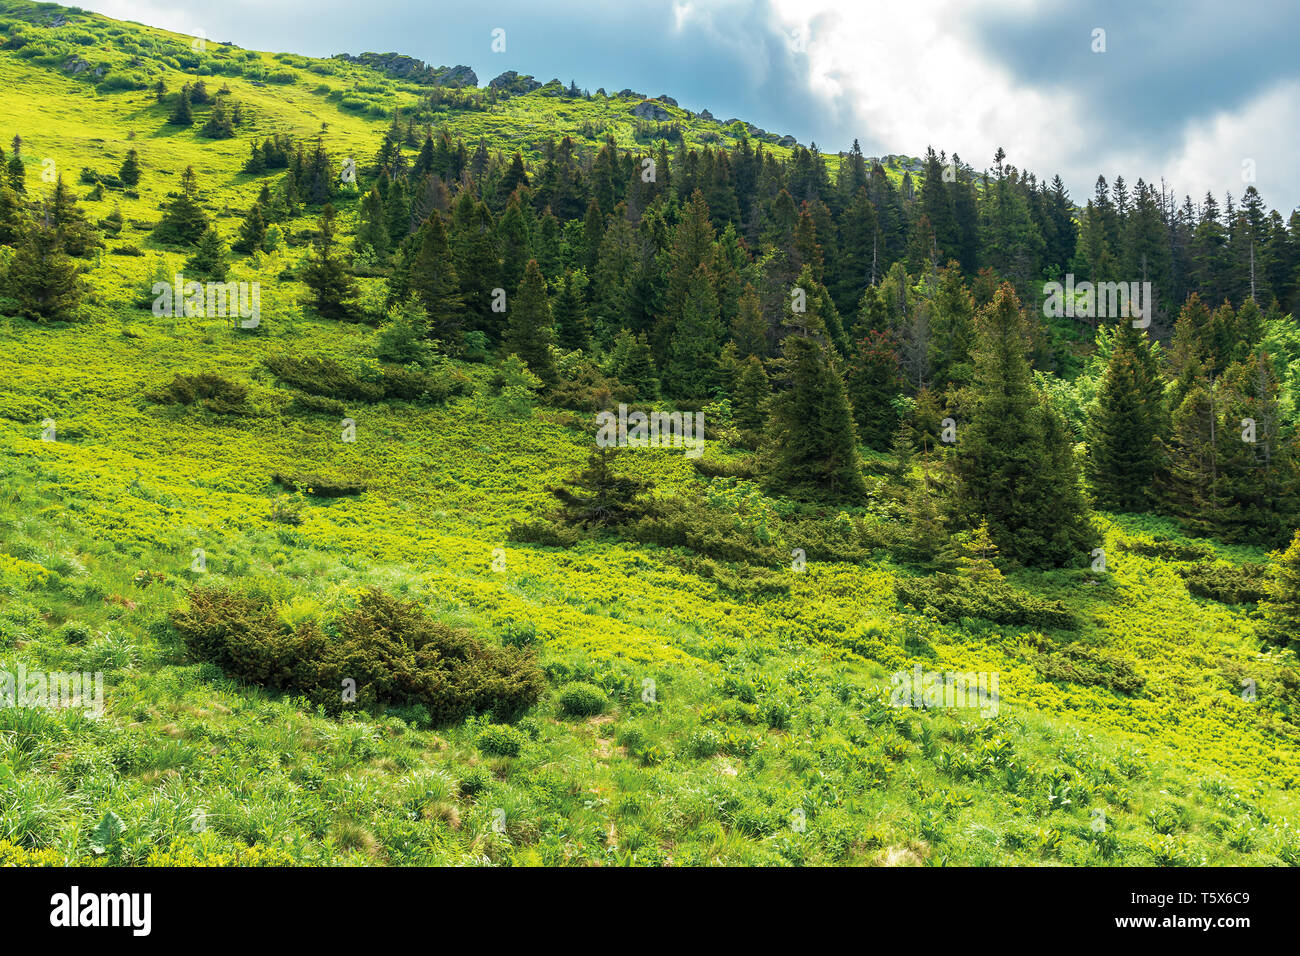 forest on hill in summer mountain landscape.  beautiful scenery on a sunny day with cloudy sky. wonderful nature background. explore carpathians conce - Stock Image